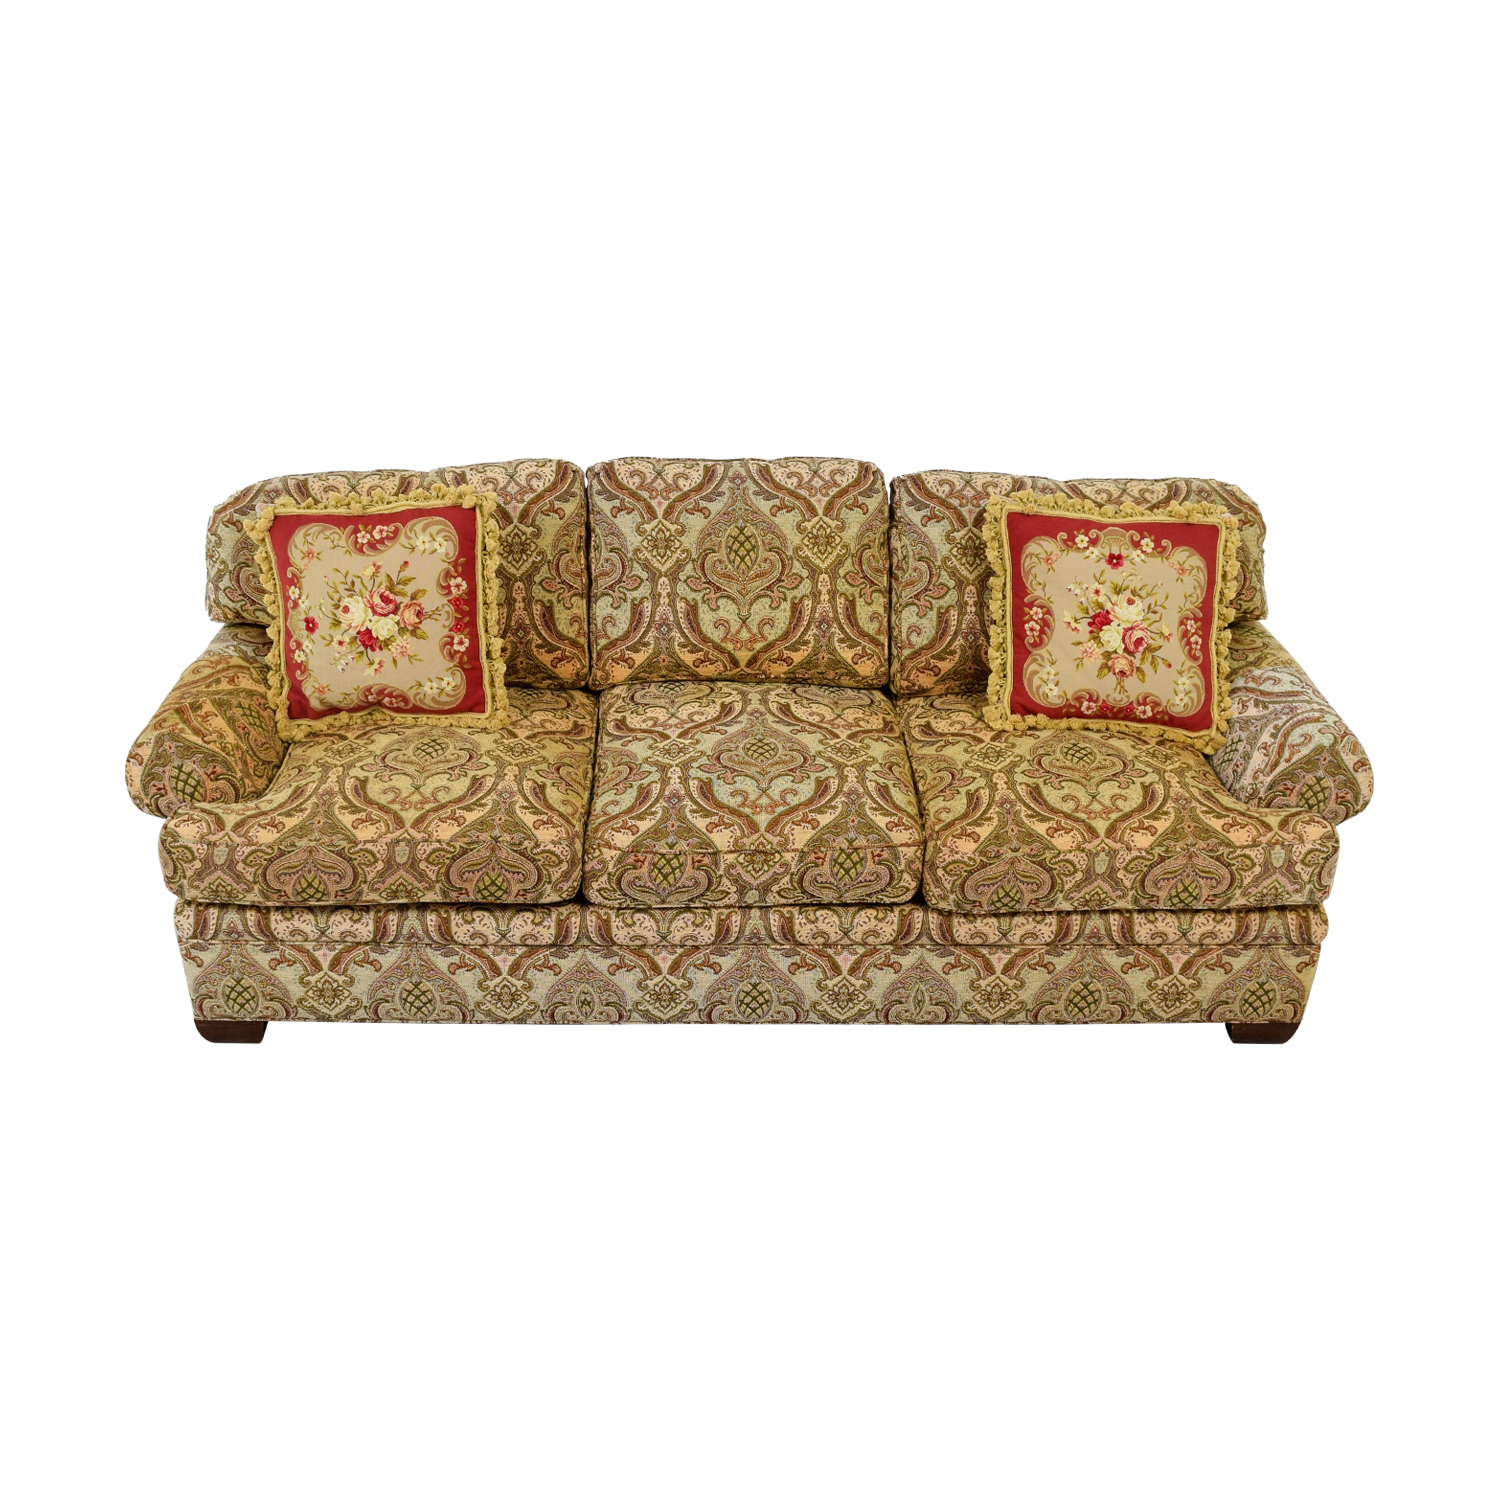 Kravet Kravet Custom Chenille Paisley Three-Cushion Sofa on sale